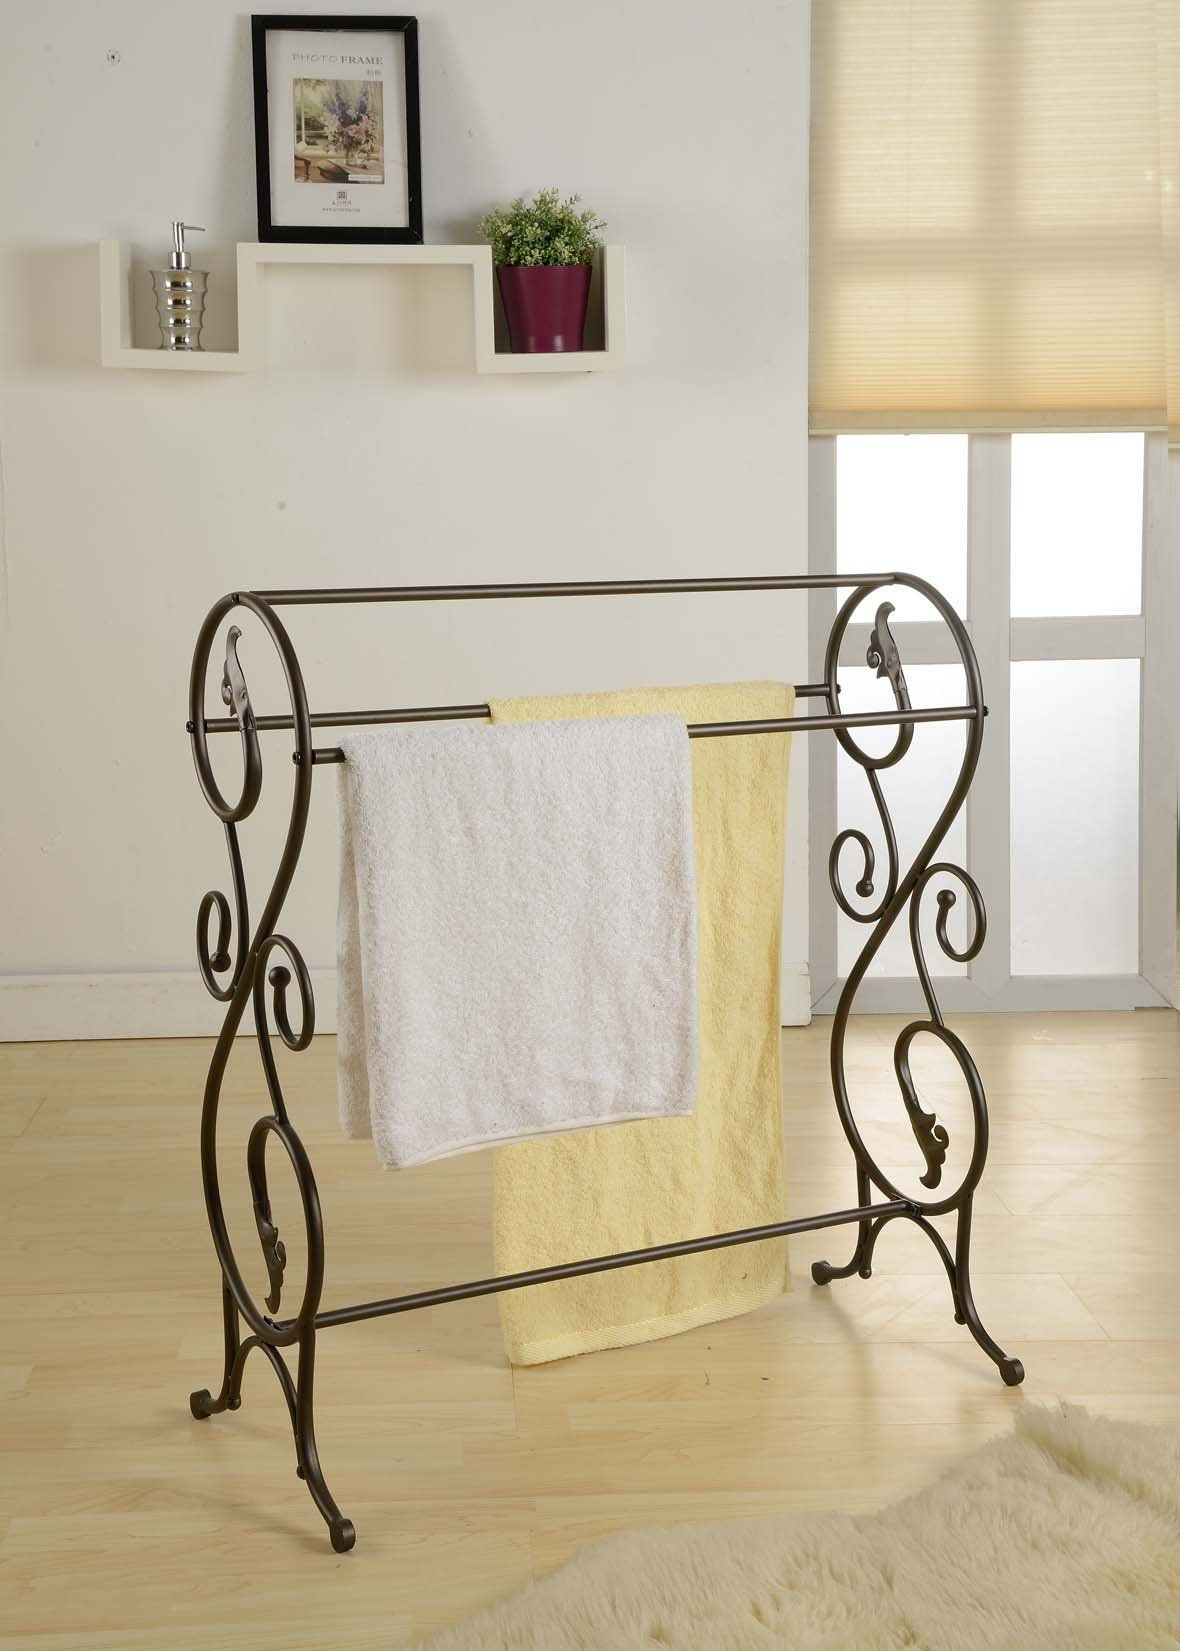 antique style towel stand